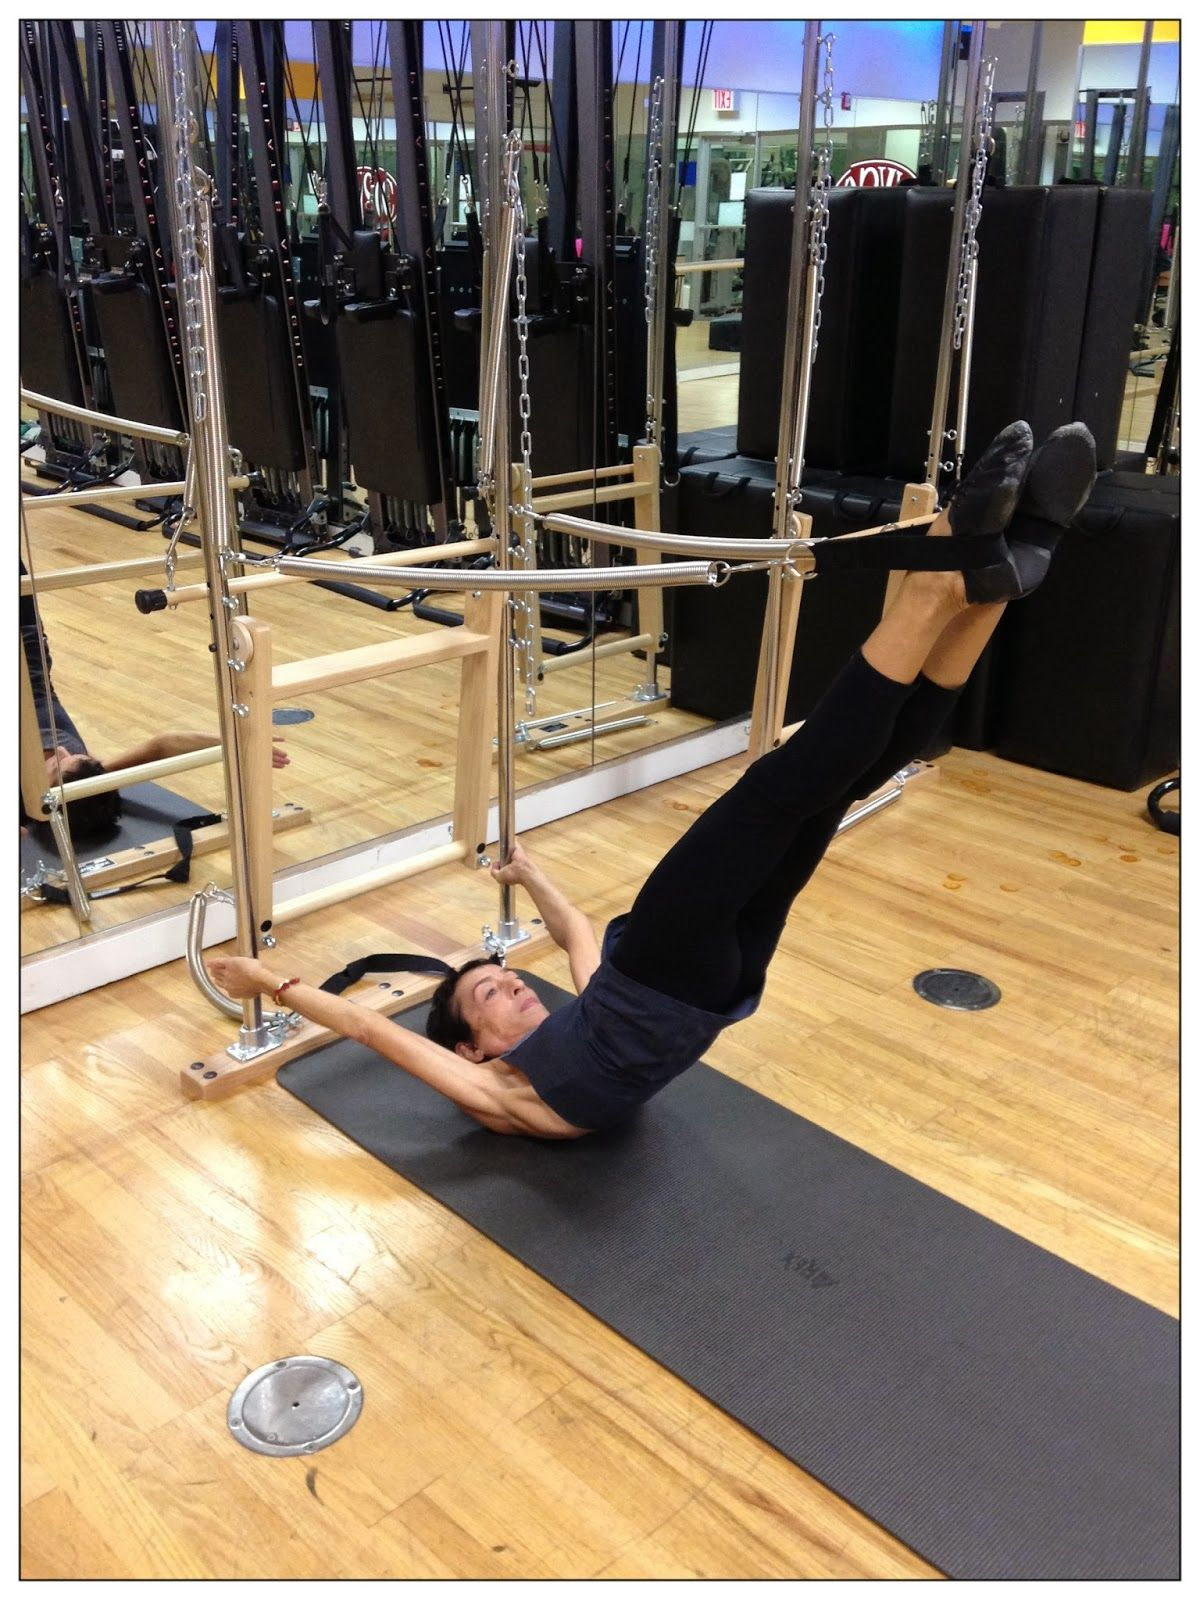 TOWER OF POWER: Bars, Chains, and Stirrups, Oh My!